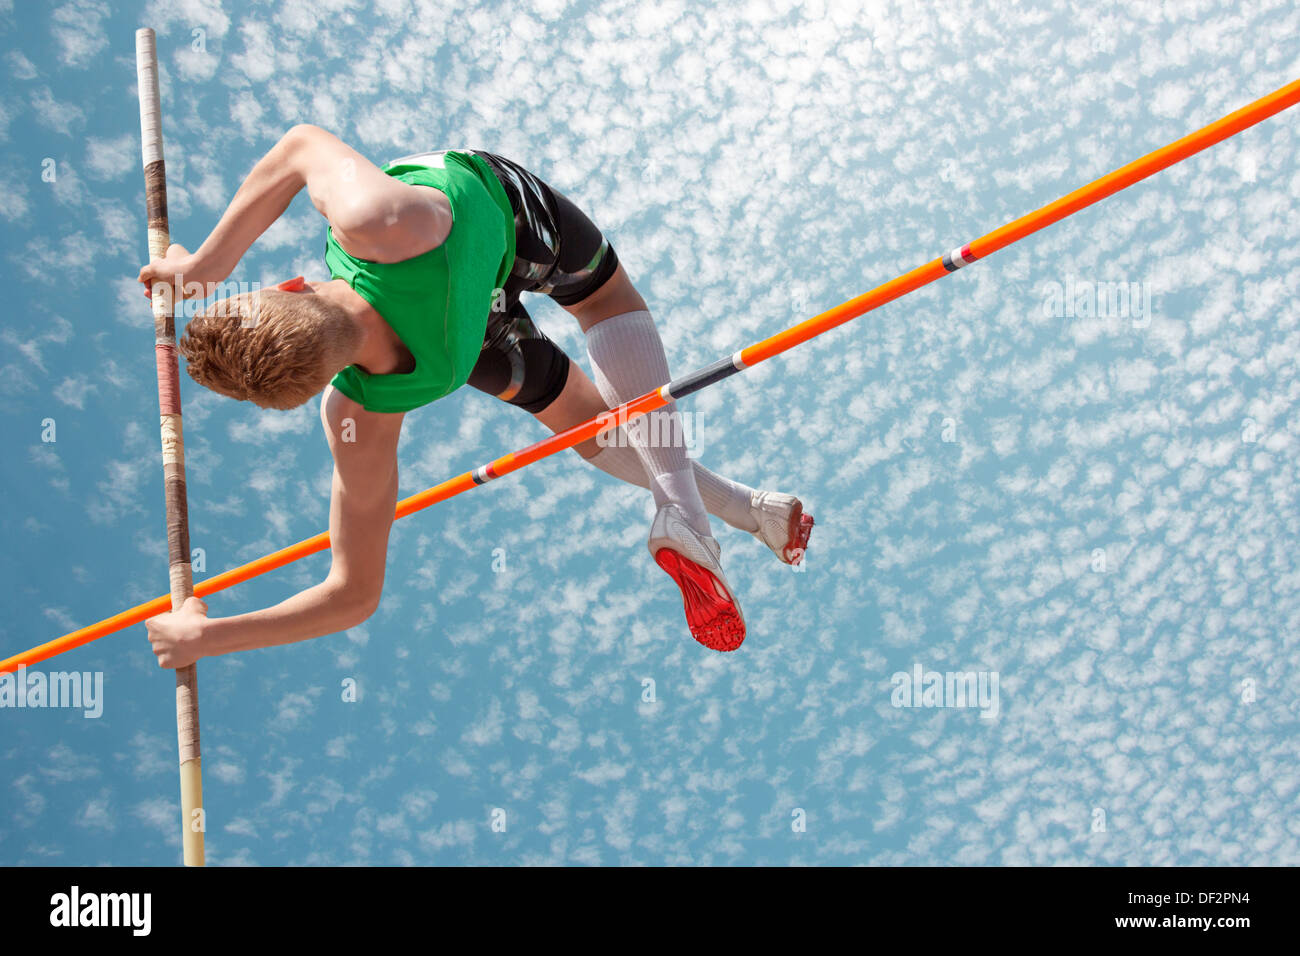 Young athletes pole vault seems to reach the sky - Stock Image